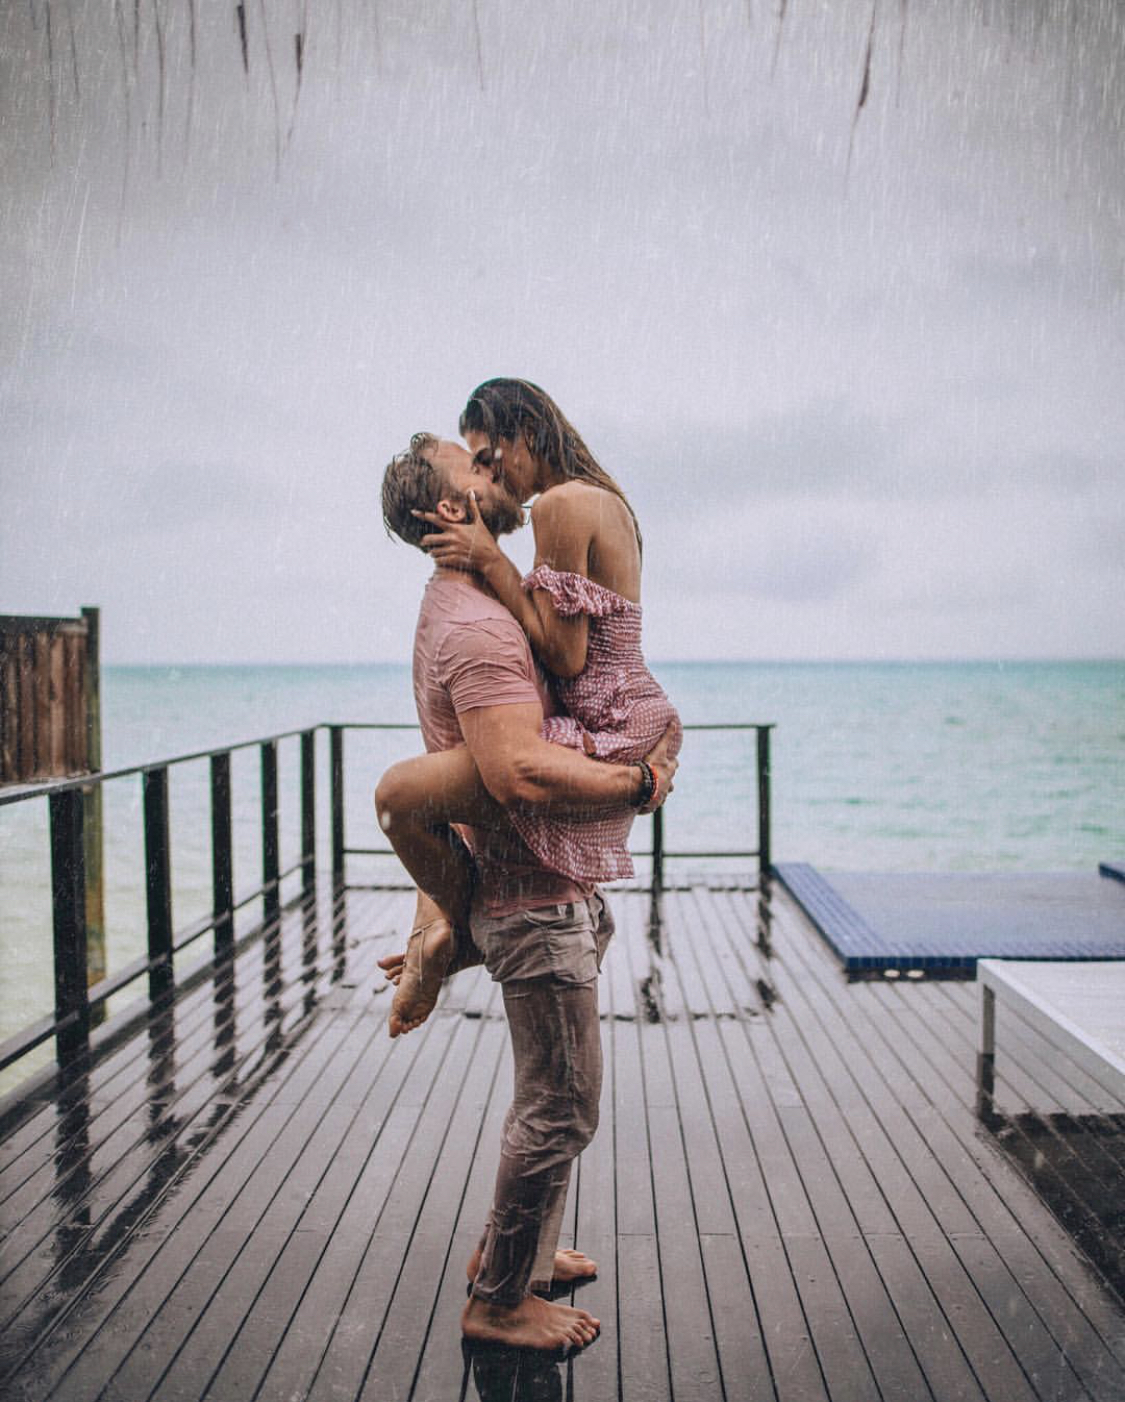 A couple poses like the famous scene in The Notebook in the Maldives